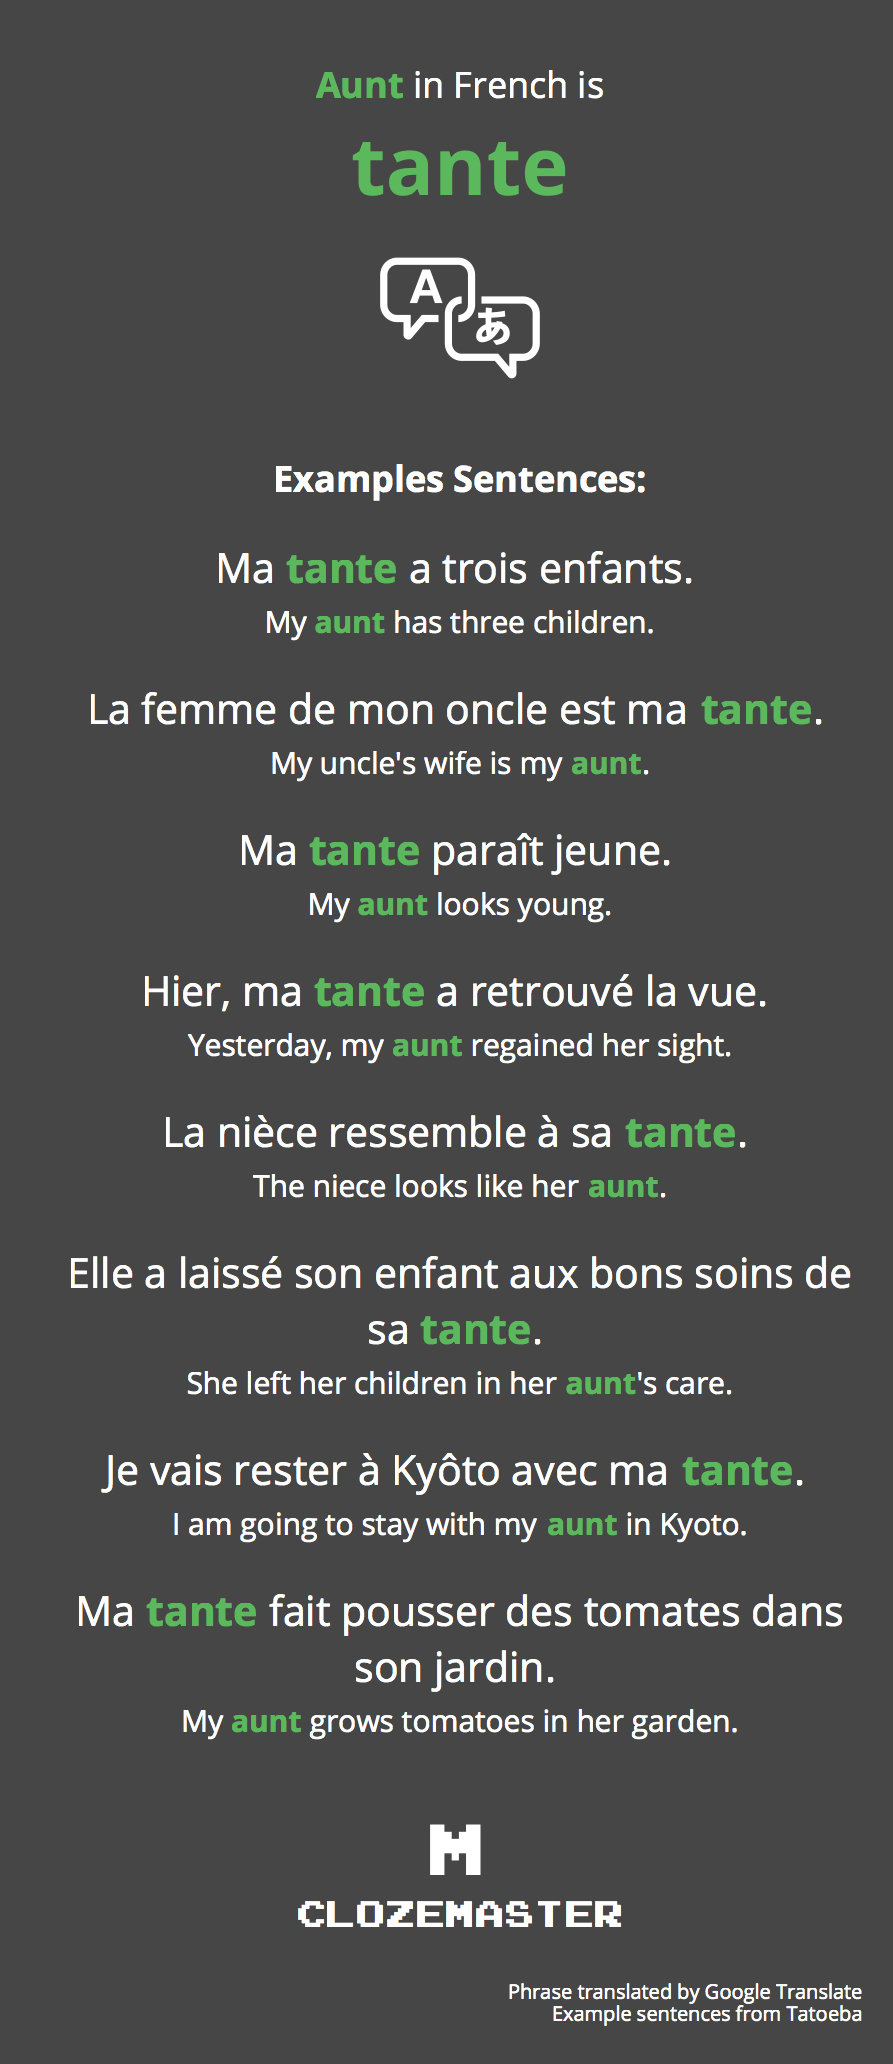 How To Say Aunt In French - Clozemaster à Transate Jardin